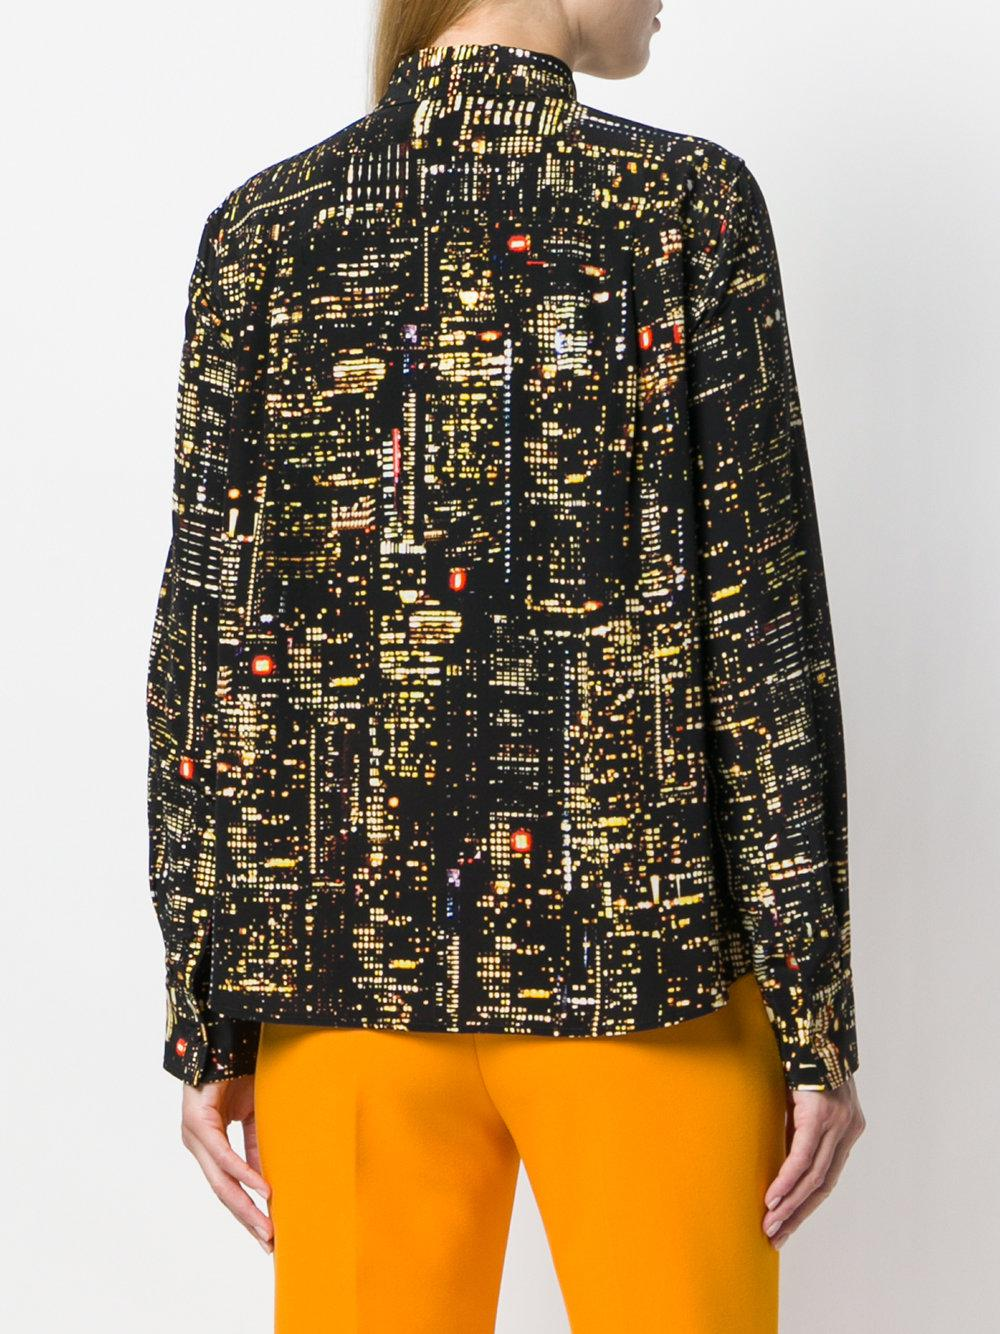 Cheapest Price Cheap Price city lights printed blouse - Multicolour Marc Jacobs Cheap Prices Reliable Discount From China Order Reliable Online WTSLSSi